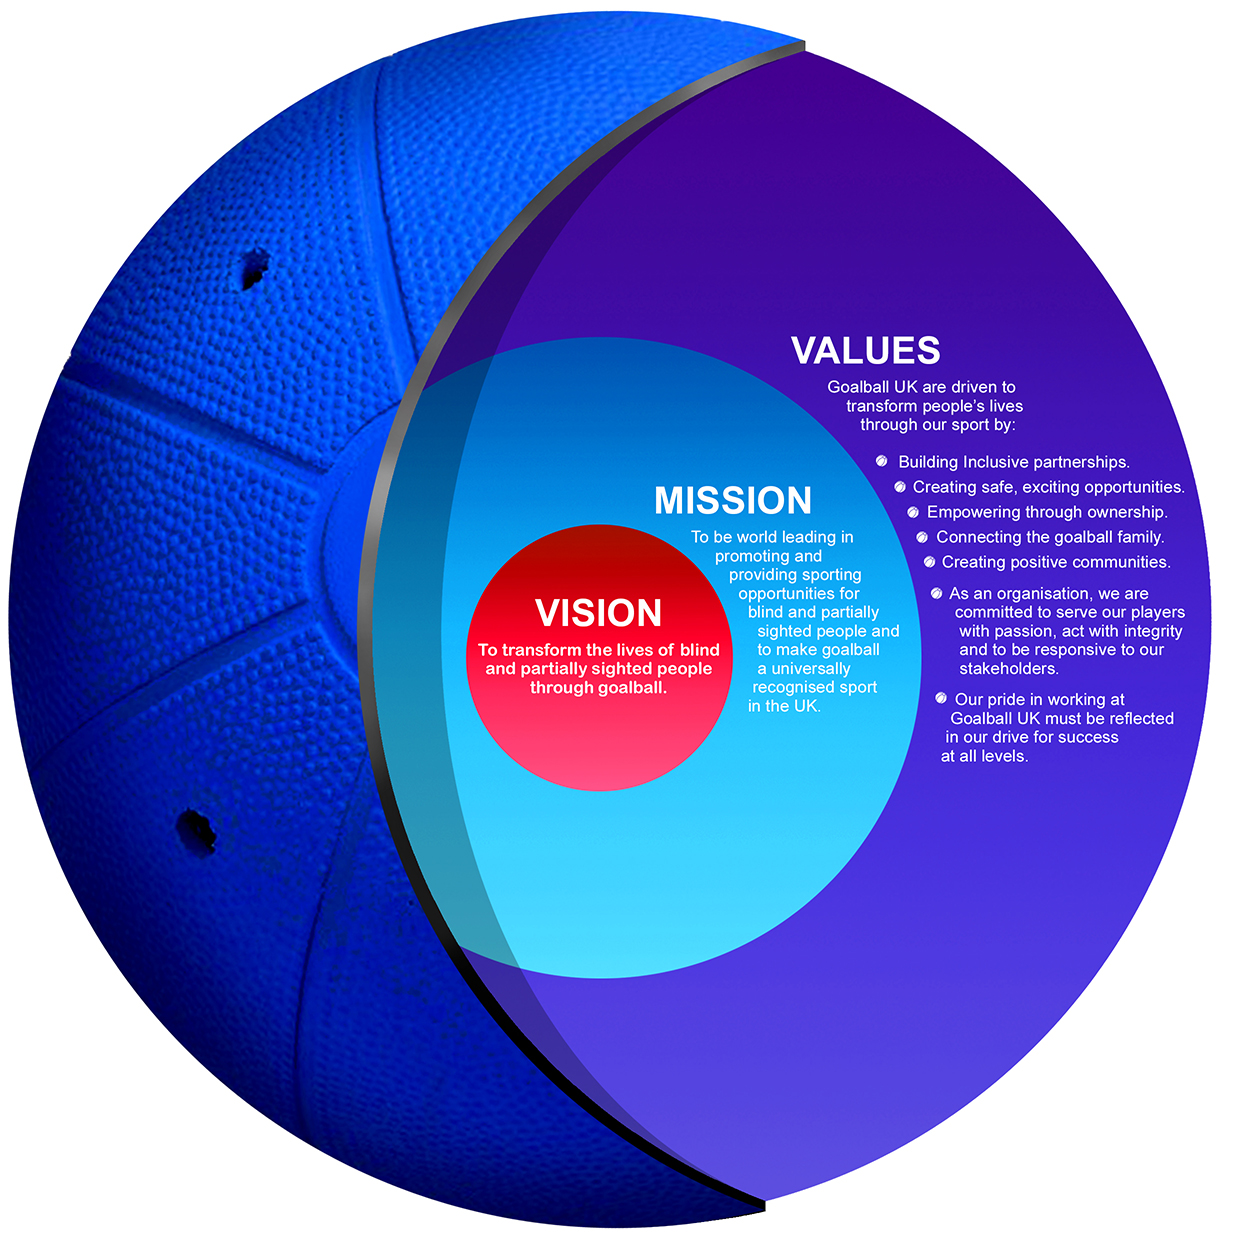 Goalball UK vision, mission and values